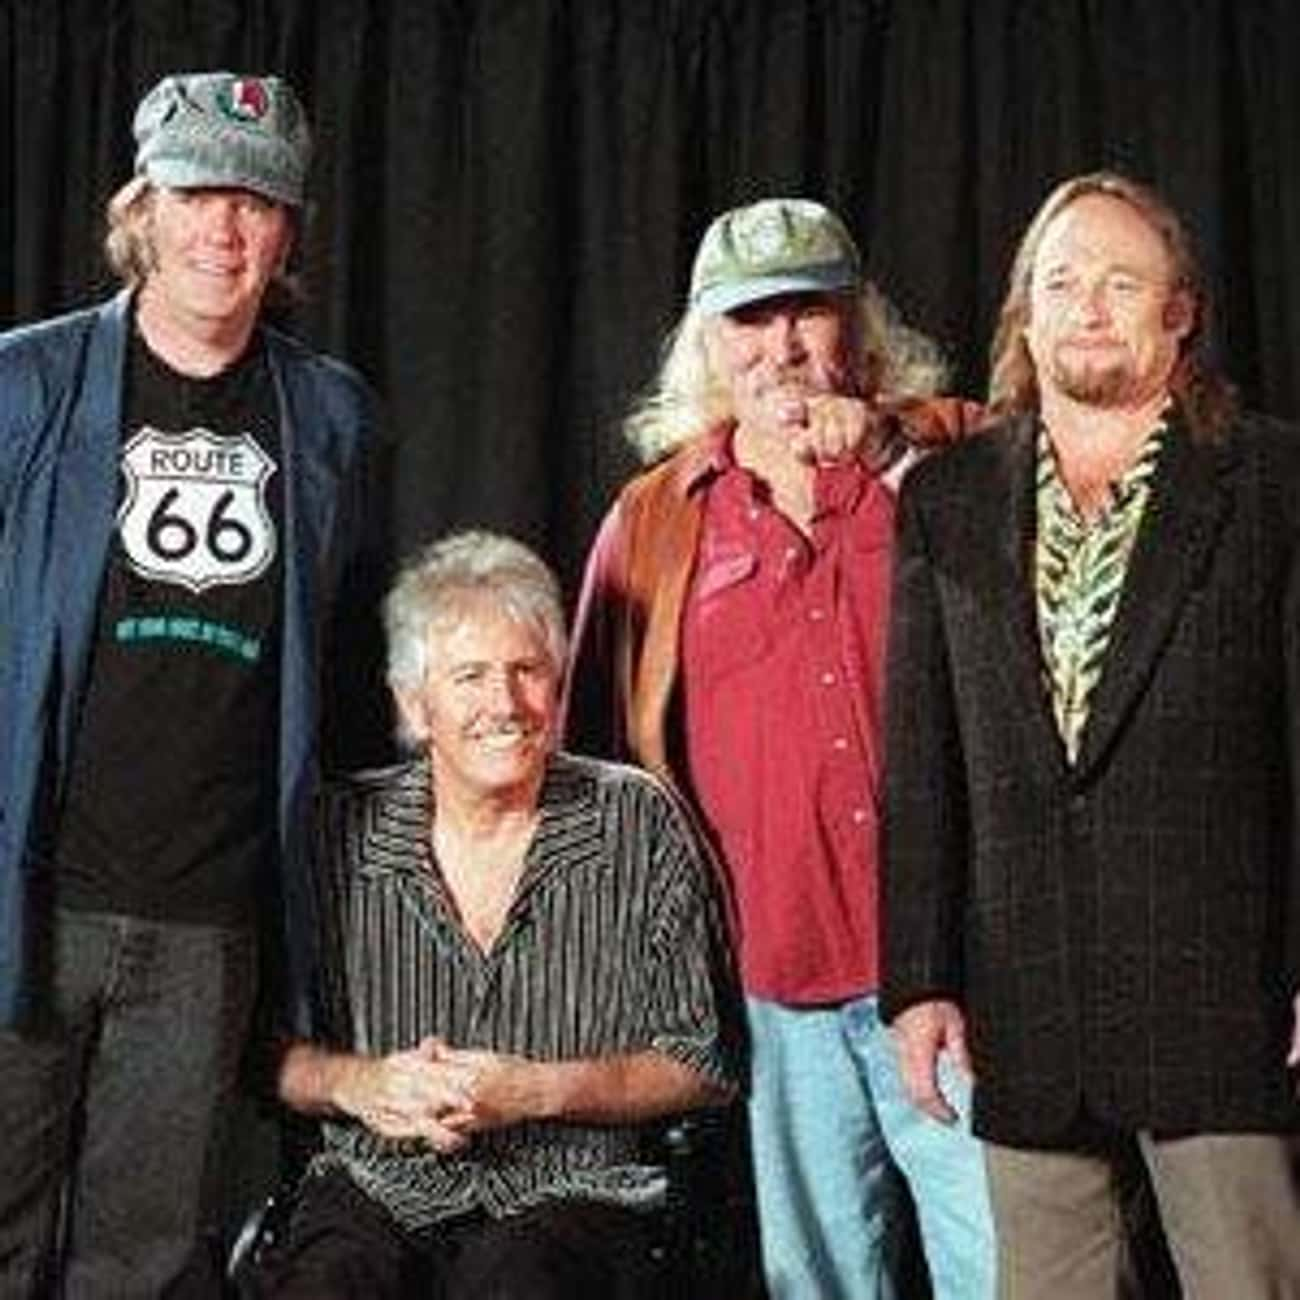 Crosby, Stills, Nash & Young is listed (or ranked) 4 on the list The Best Supergroups Ever Made